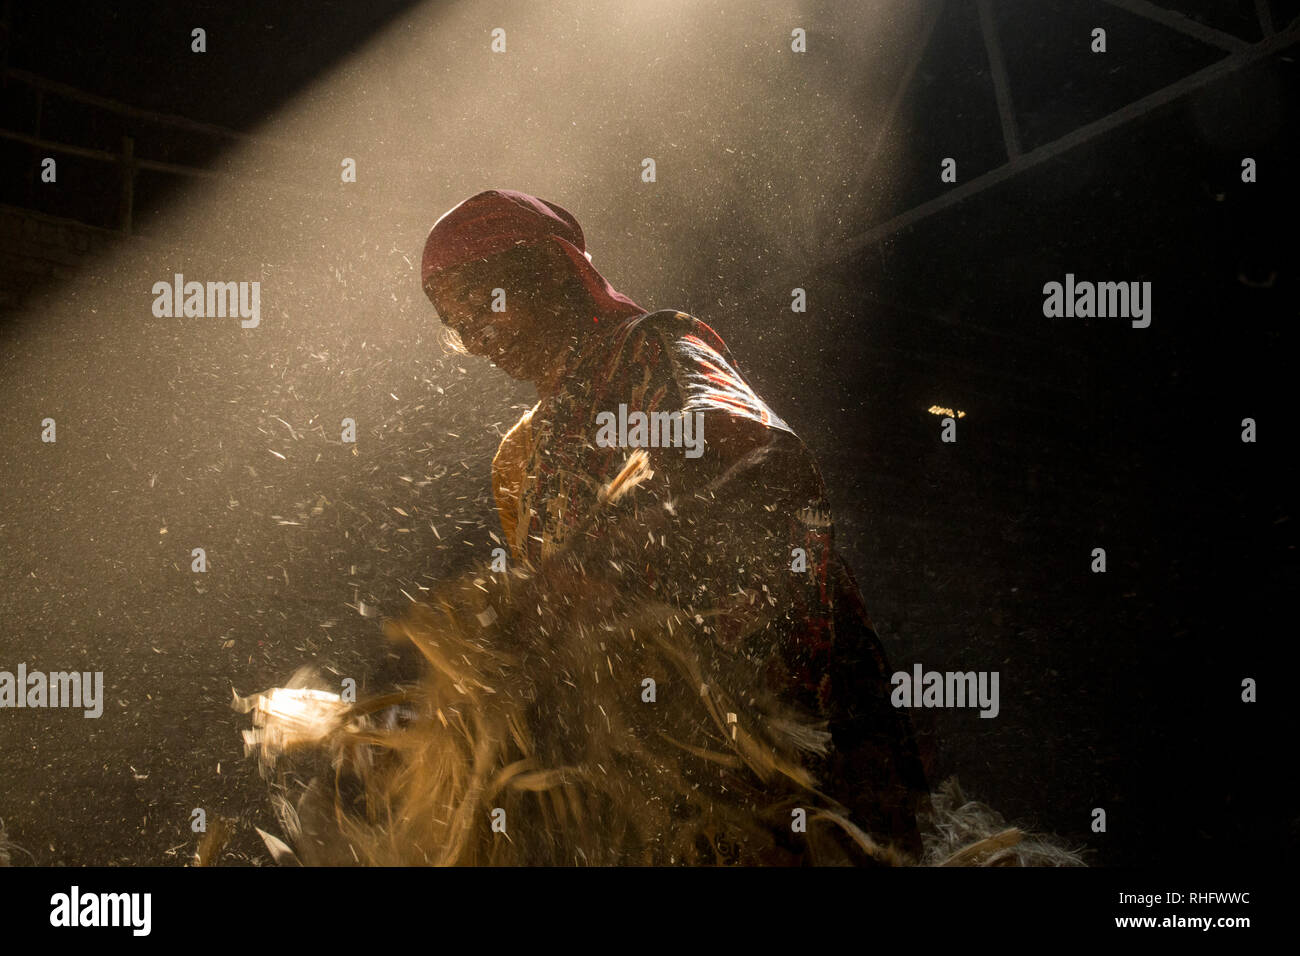 DHAKA, BANGLADESH - JANUARY 24 : Women working in dust environmentinside at jute processing mill near Dhaka, Bangladesh on January 24, 2019. Stock Photo